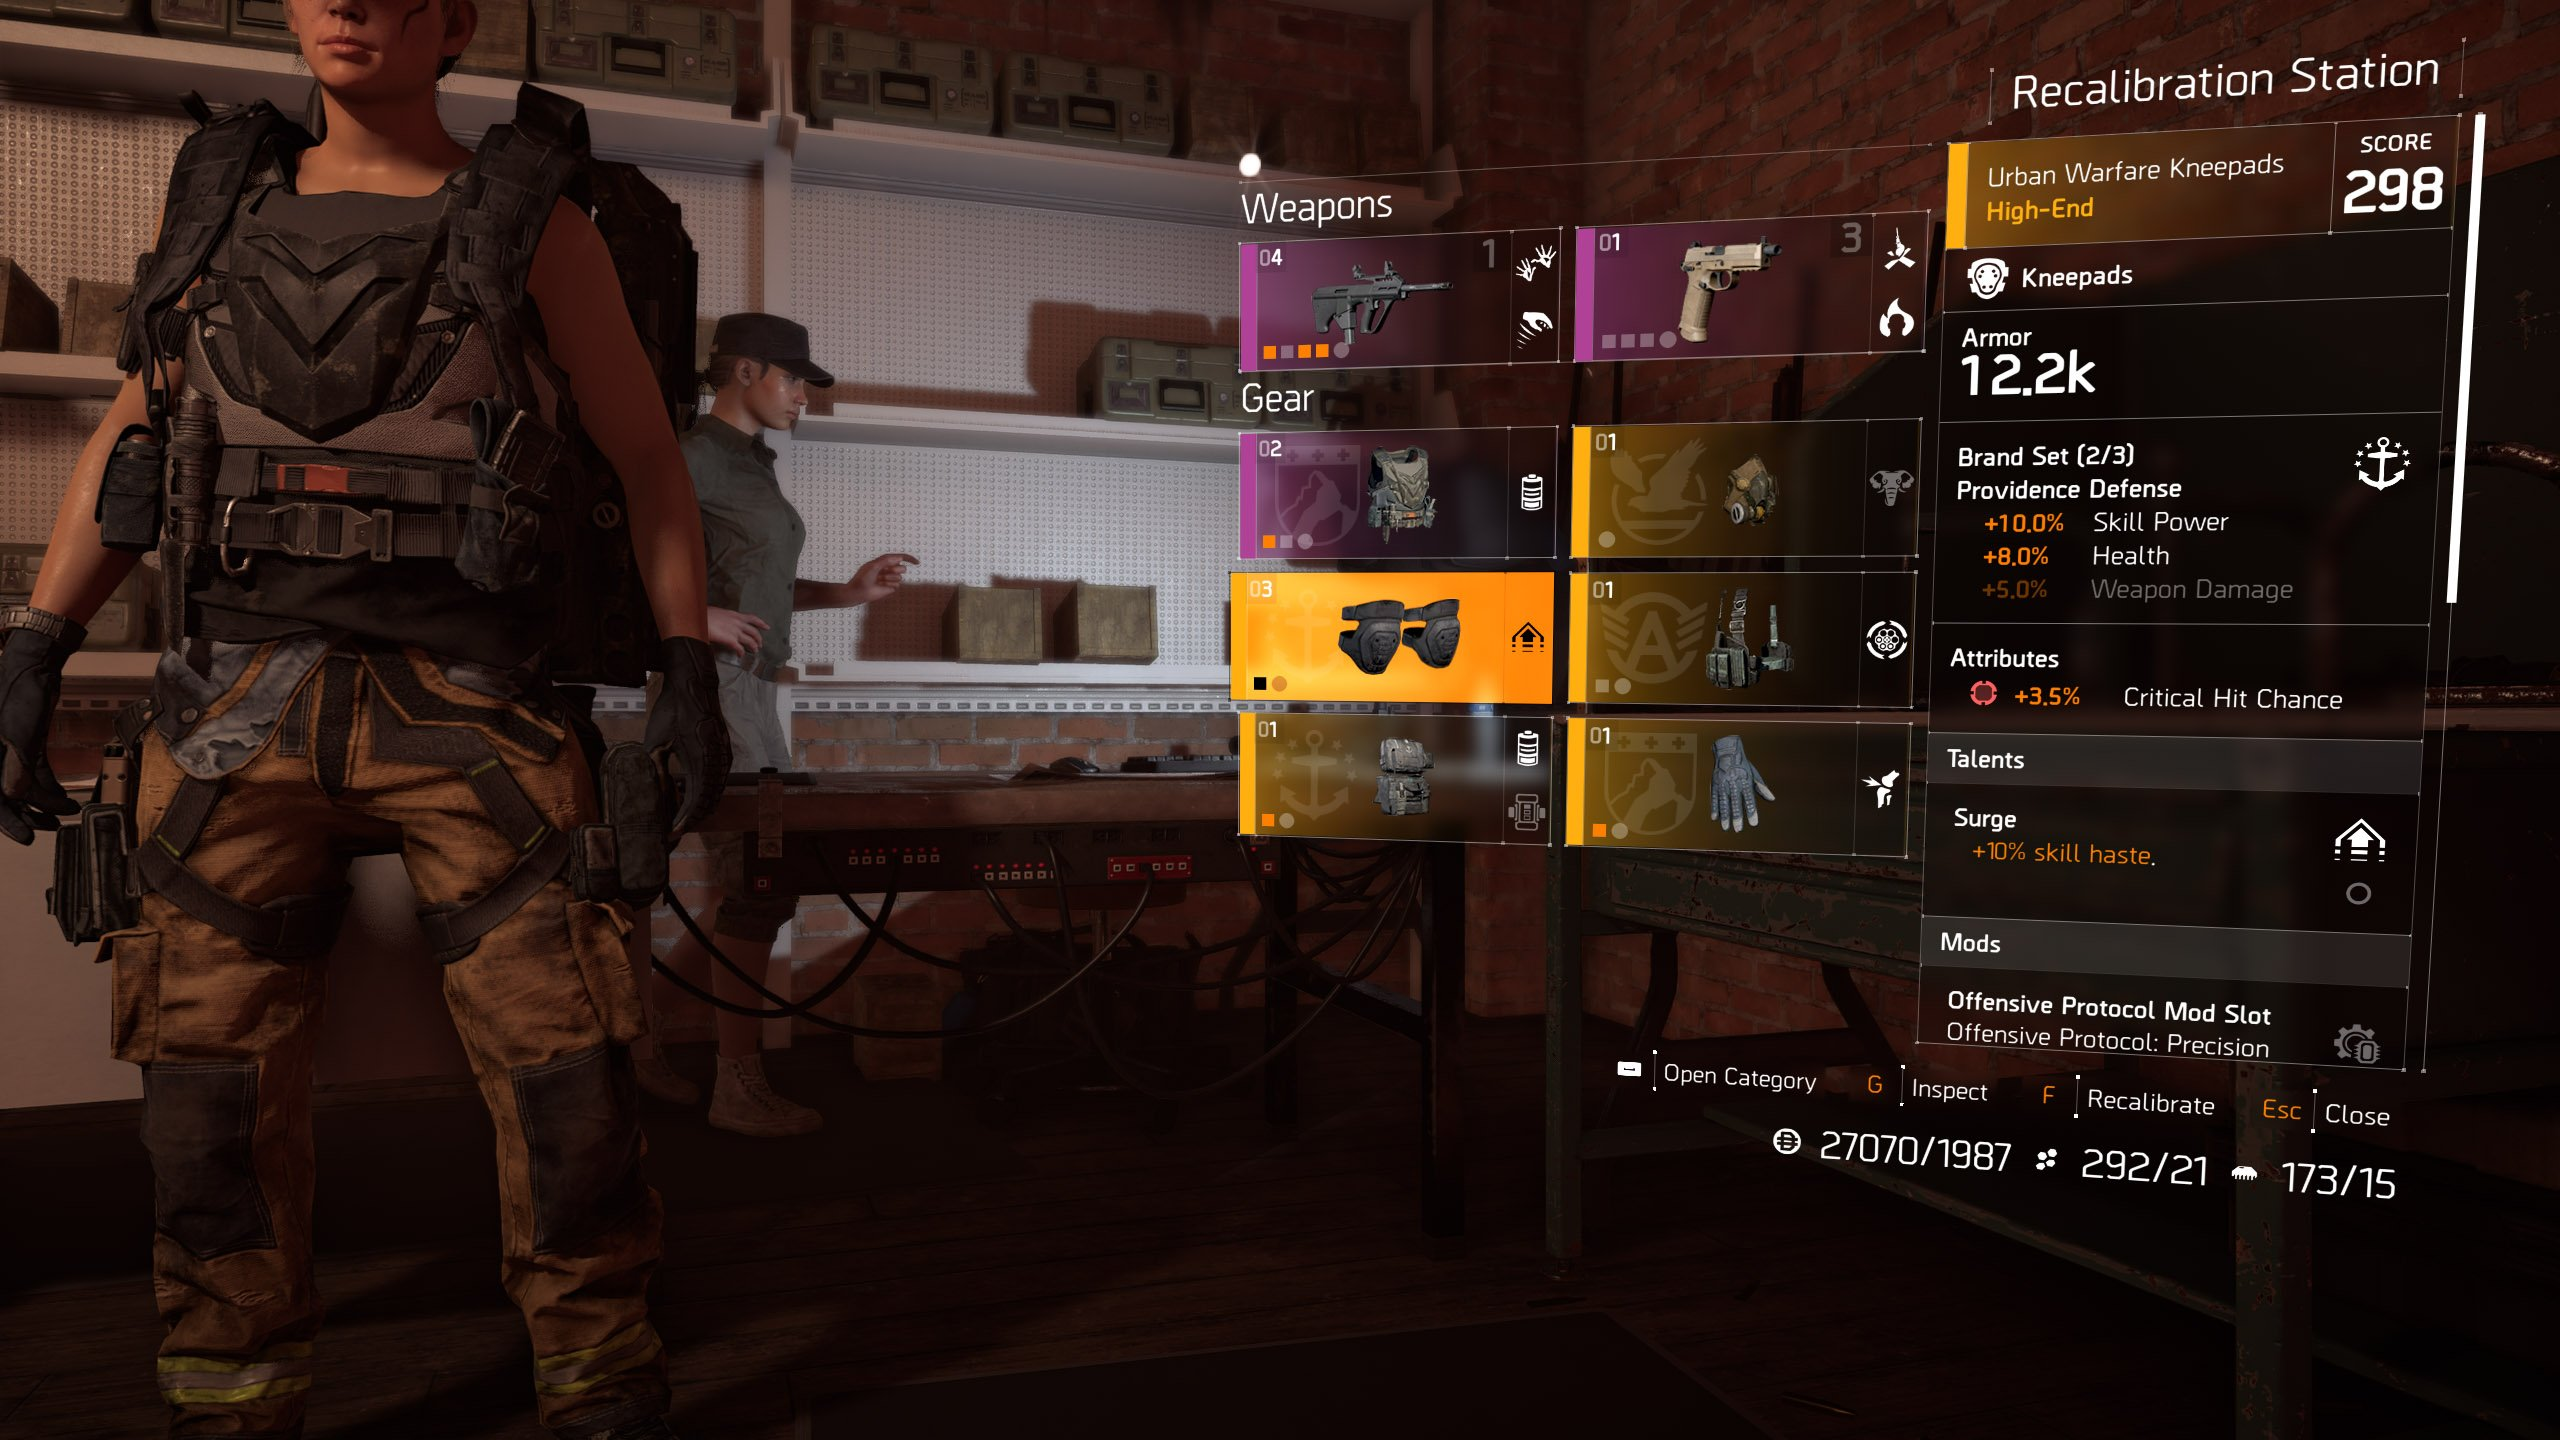 The Division 2 Recalibration Station